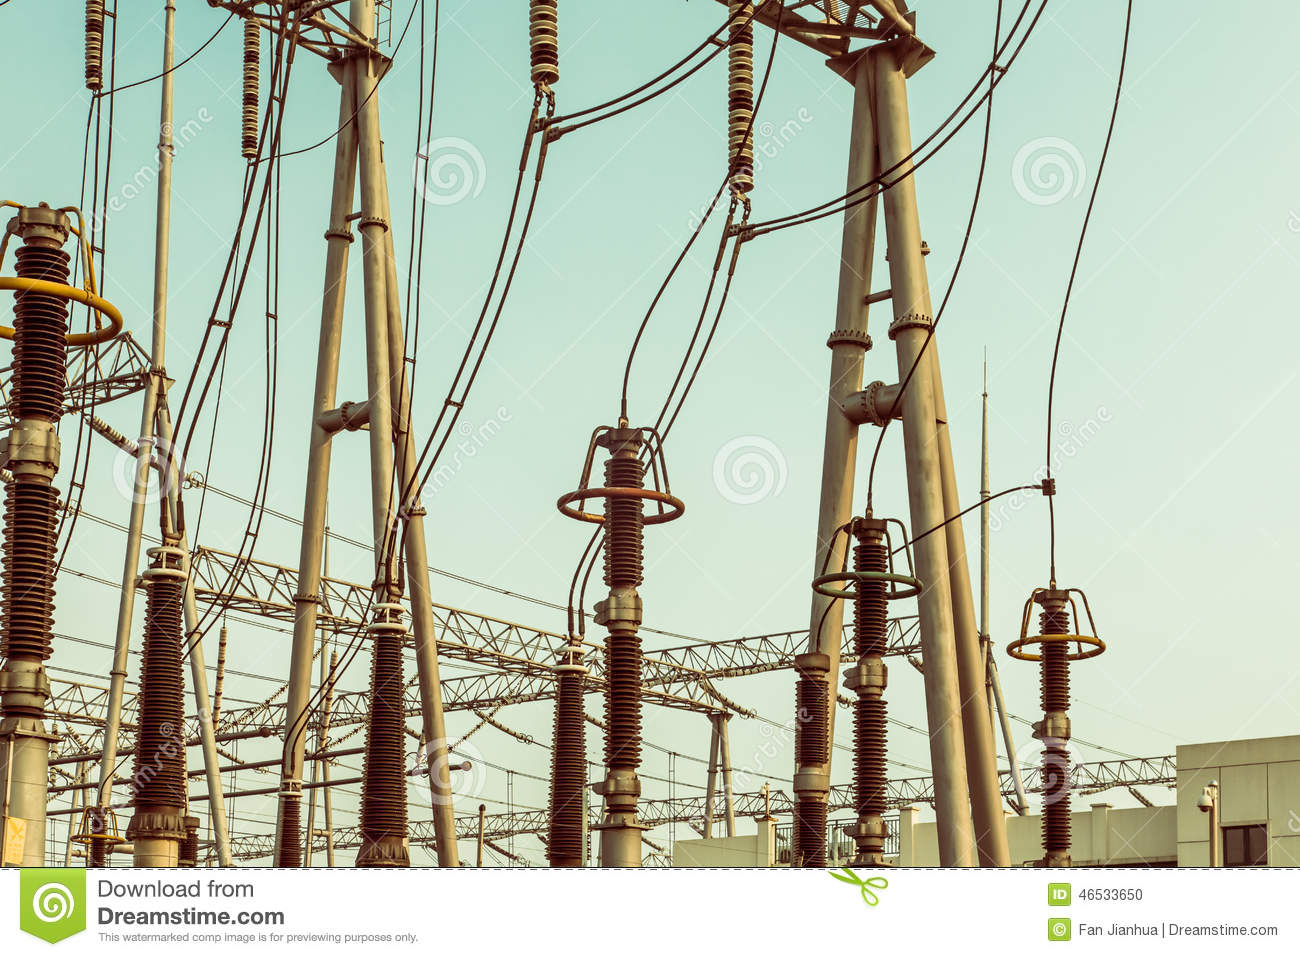 High Voltage Transmission Wire : Substation and high voltage power transmission iron tower